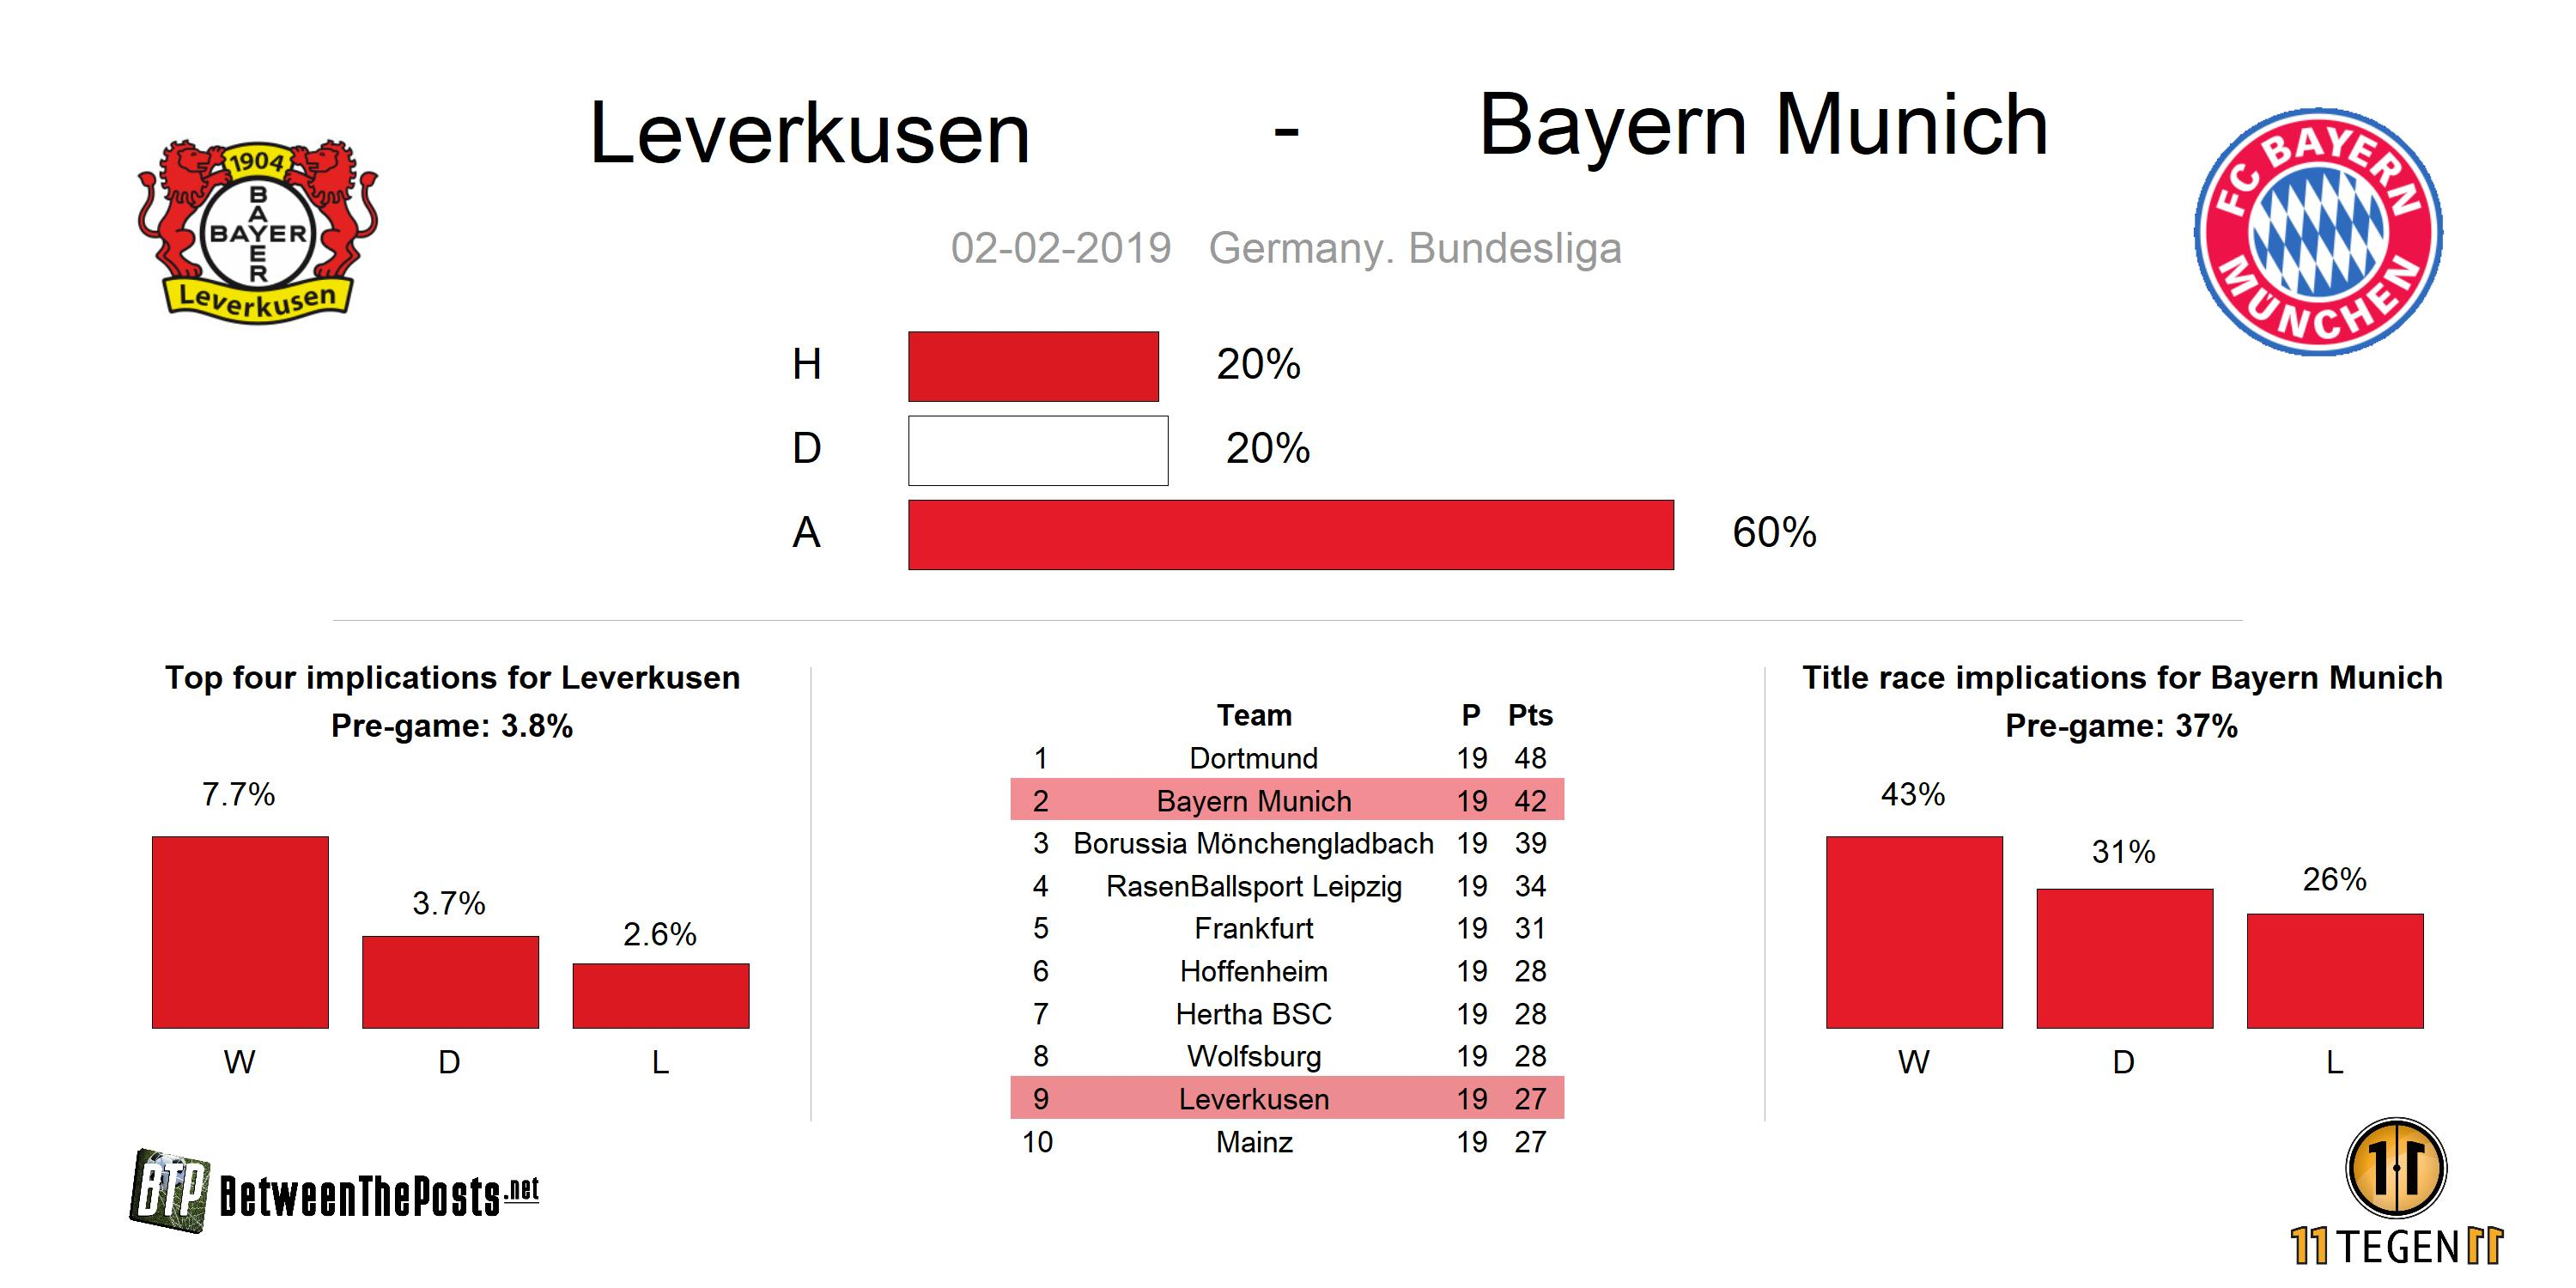 Preview Bayer Leverkusen - Bayern Munich 3-1 Bundesliga